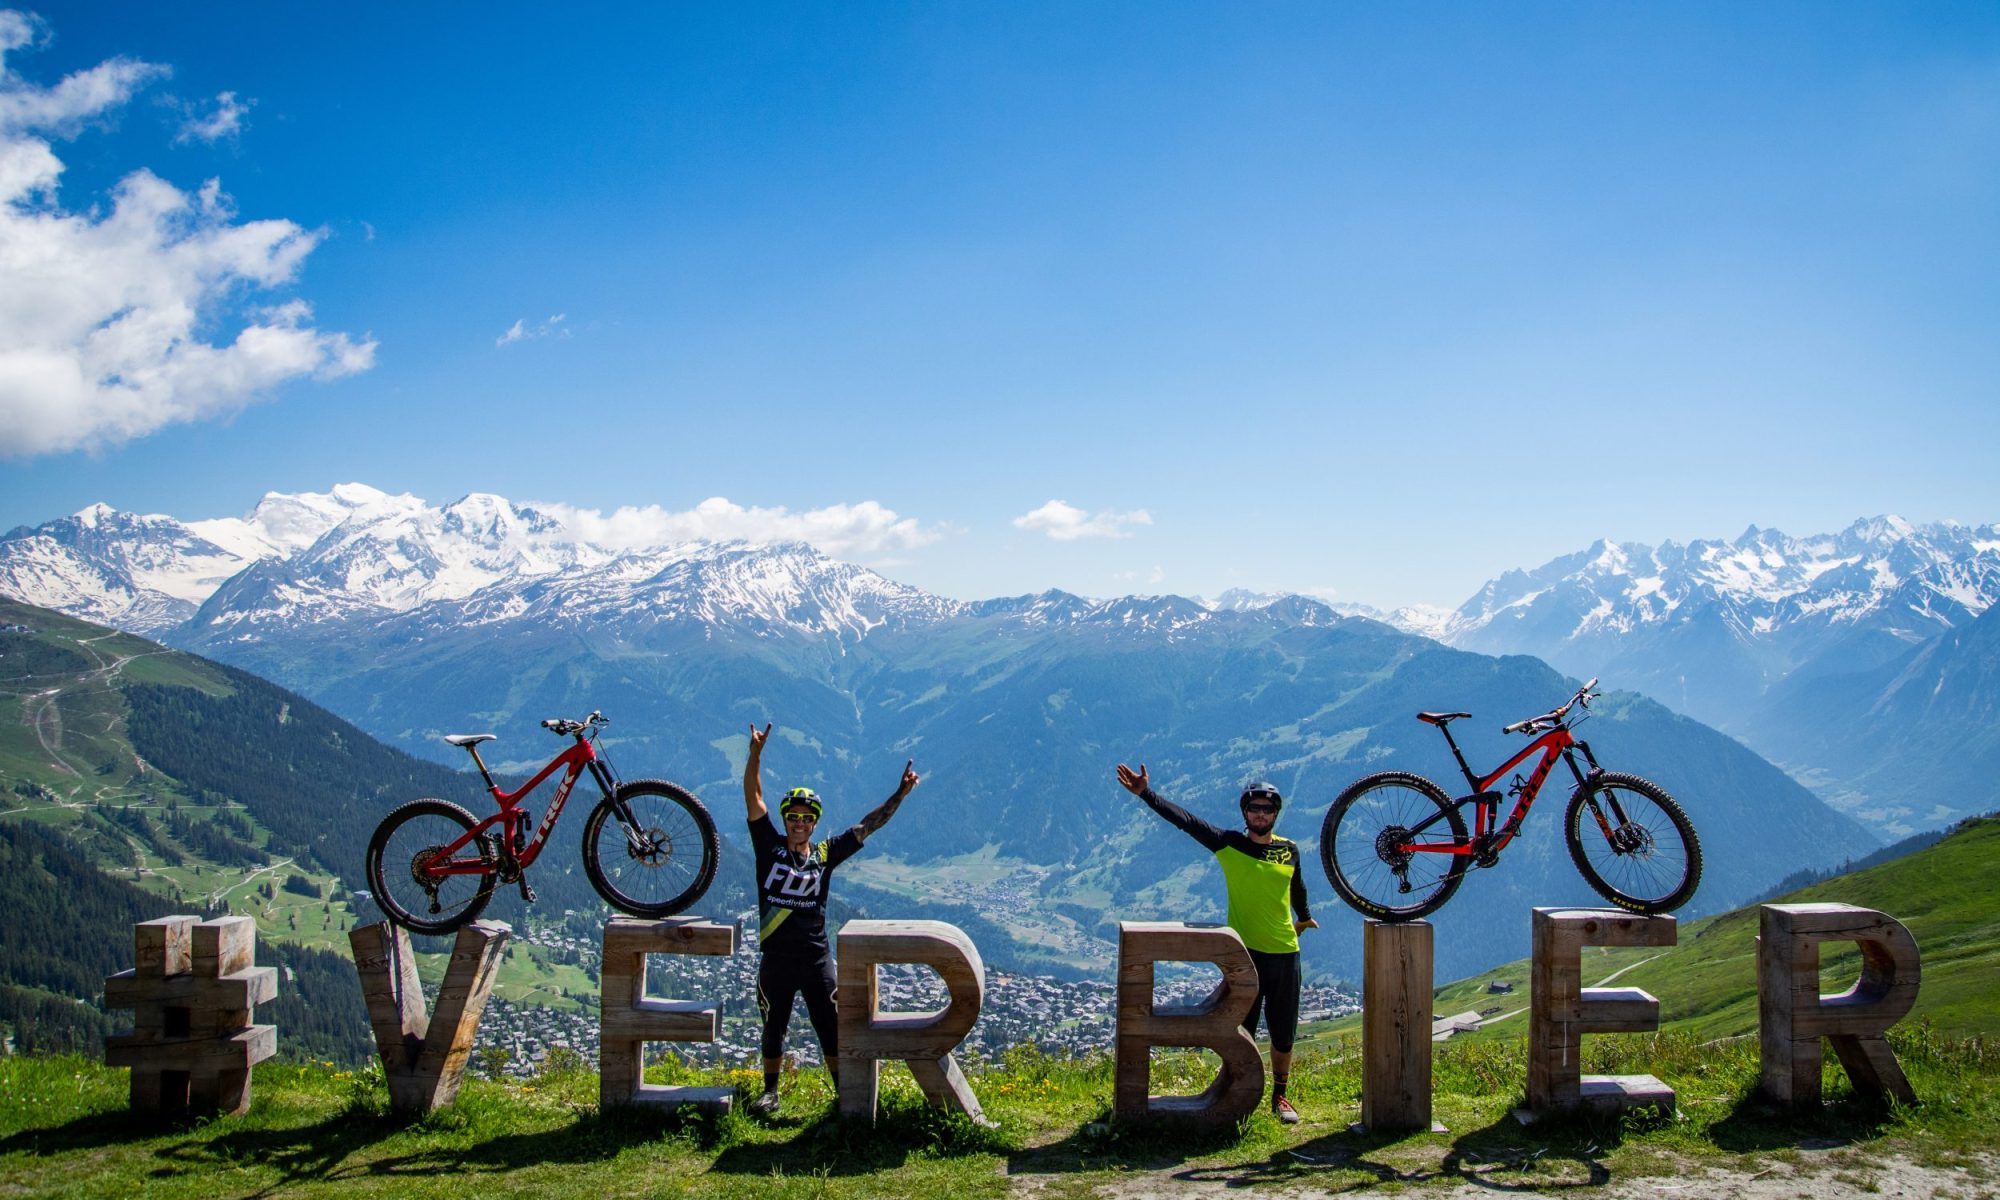 The Verbier Bike Park and its trails of VTT and Downhill. Photographer: KifCat. Verbier Promotion.